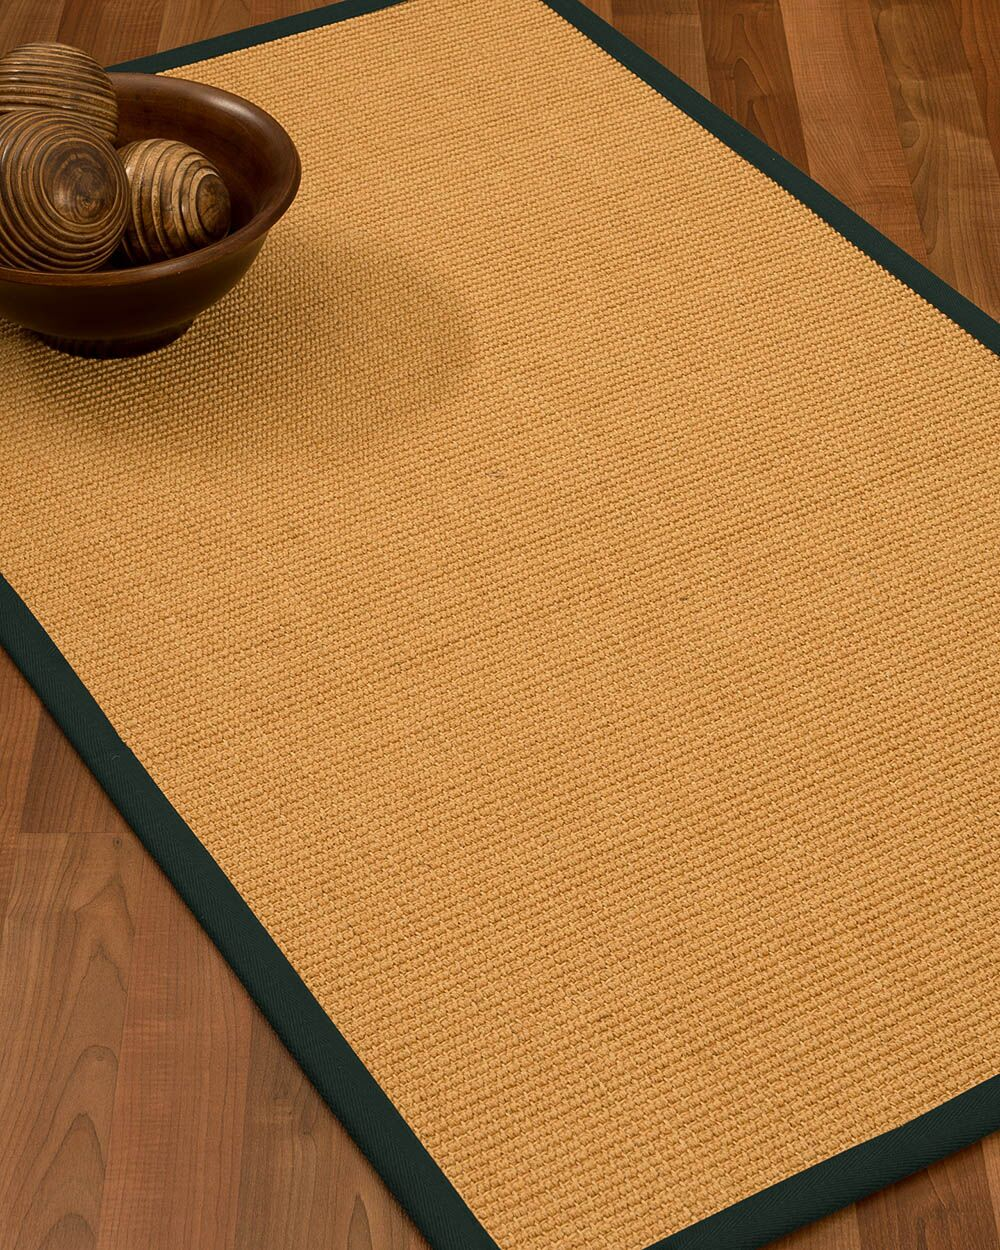 Buggs Hand Woven Brown Area Rug Rug Size: Rectangle 12' x 15'